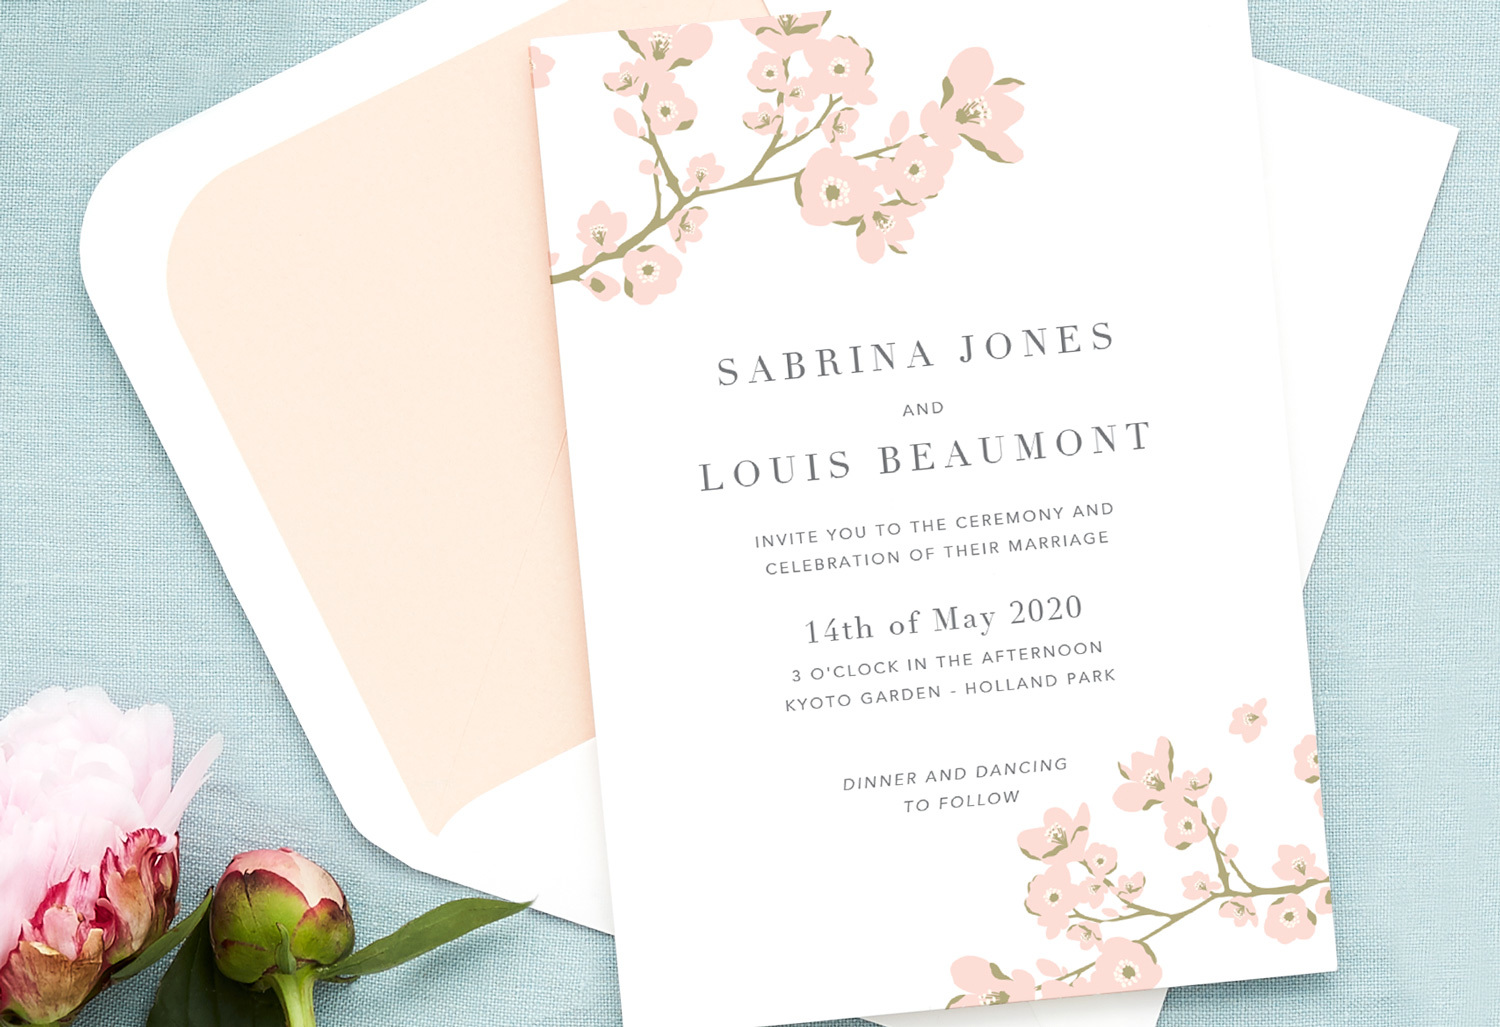 002 Top Wedding Invite Wording Template Inspiration  Templates Chinese Invitation Microsoft Word From Bride And Groom Example InvitingFull